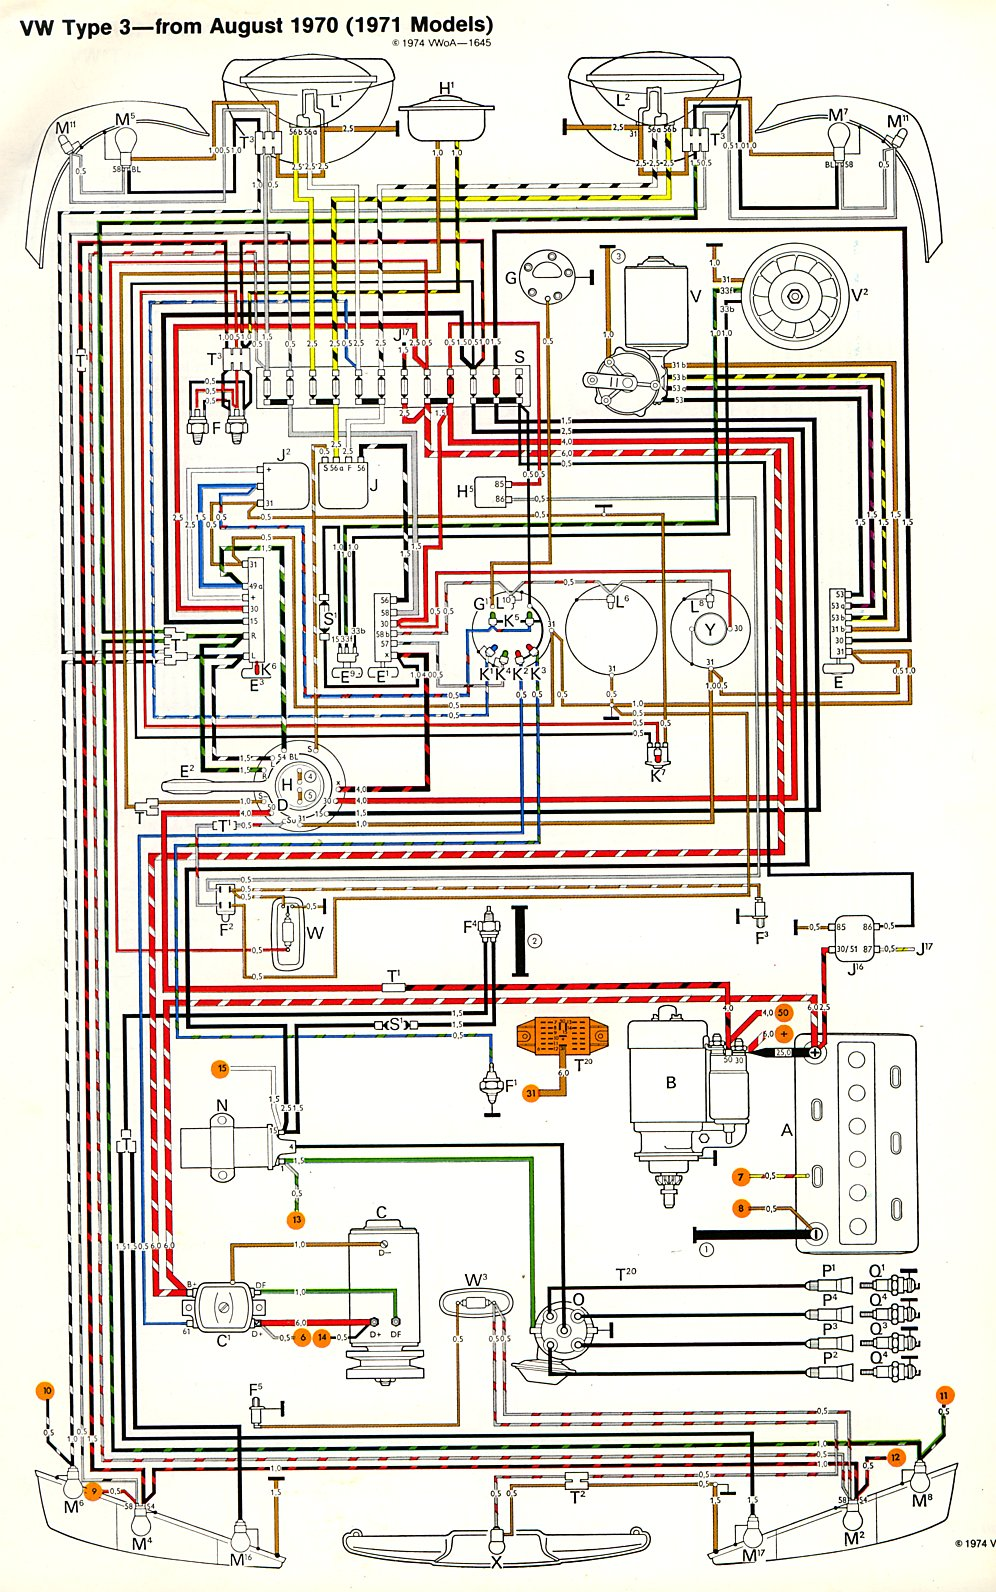 1977 corvette fuse box diagram 1977 chevy fuse box diagram thesamba com type 3 wiring diagrams #4